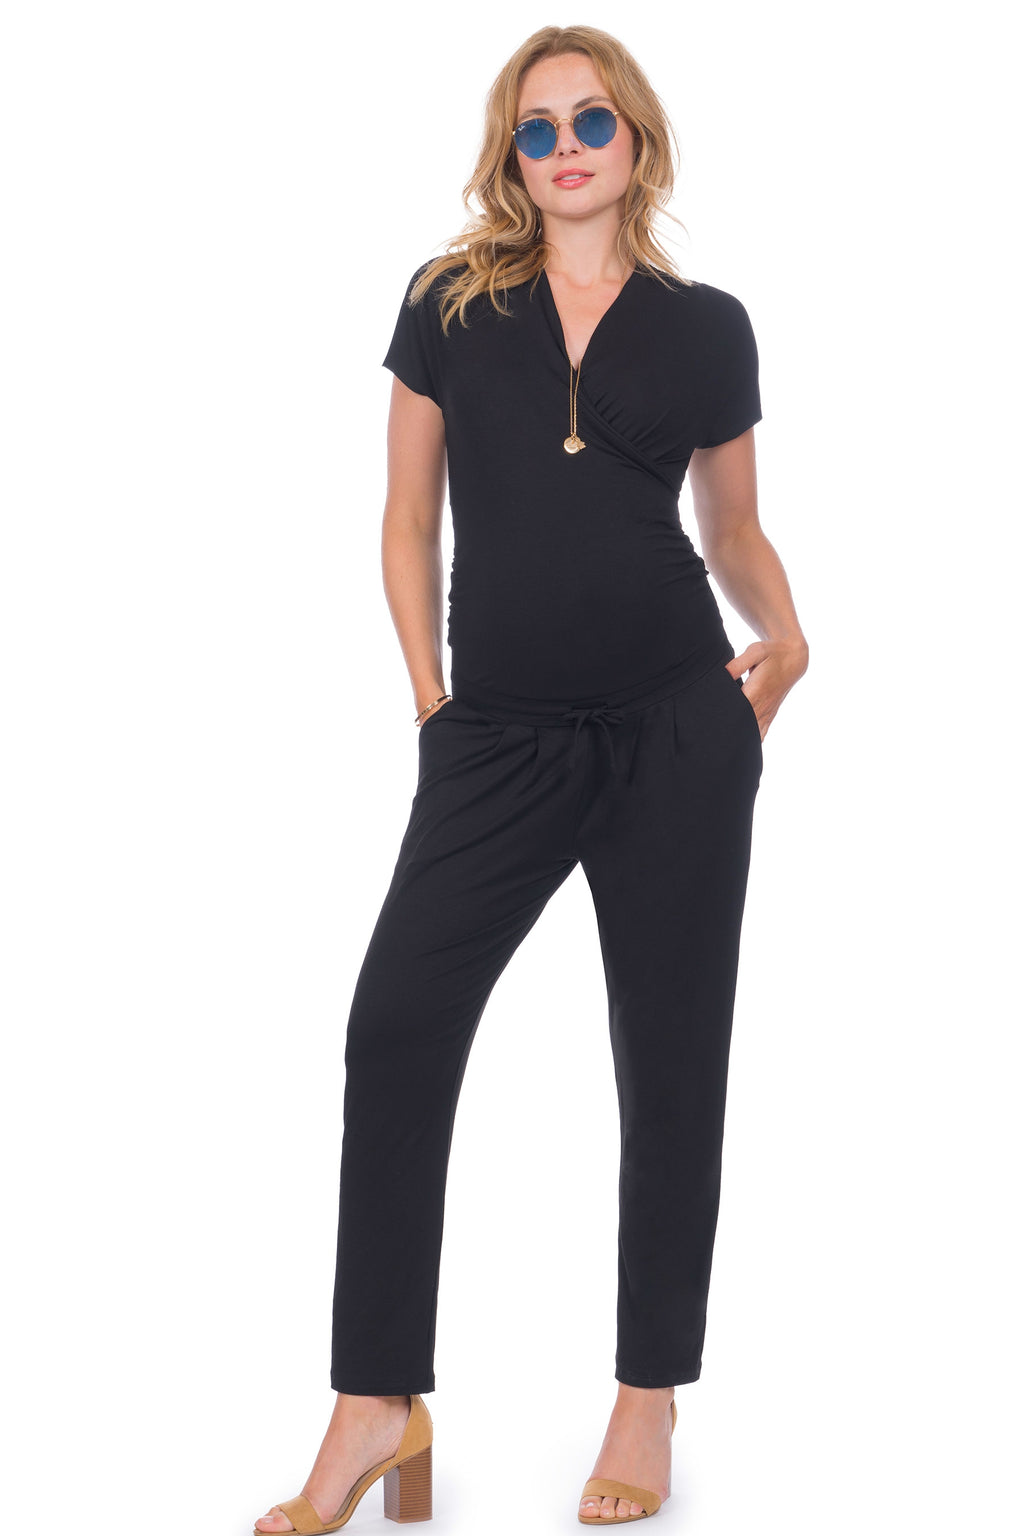 Seraphine Dove Black Maternity and Nursing Jumpsuit - Seven Women Maternity